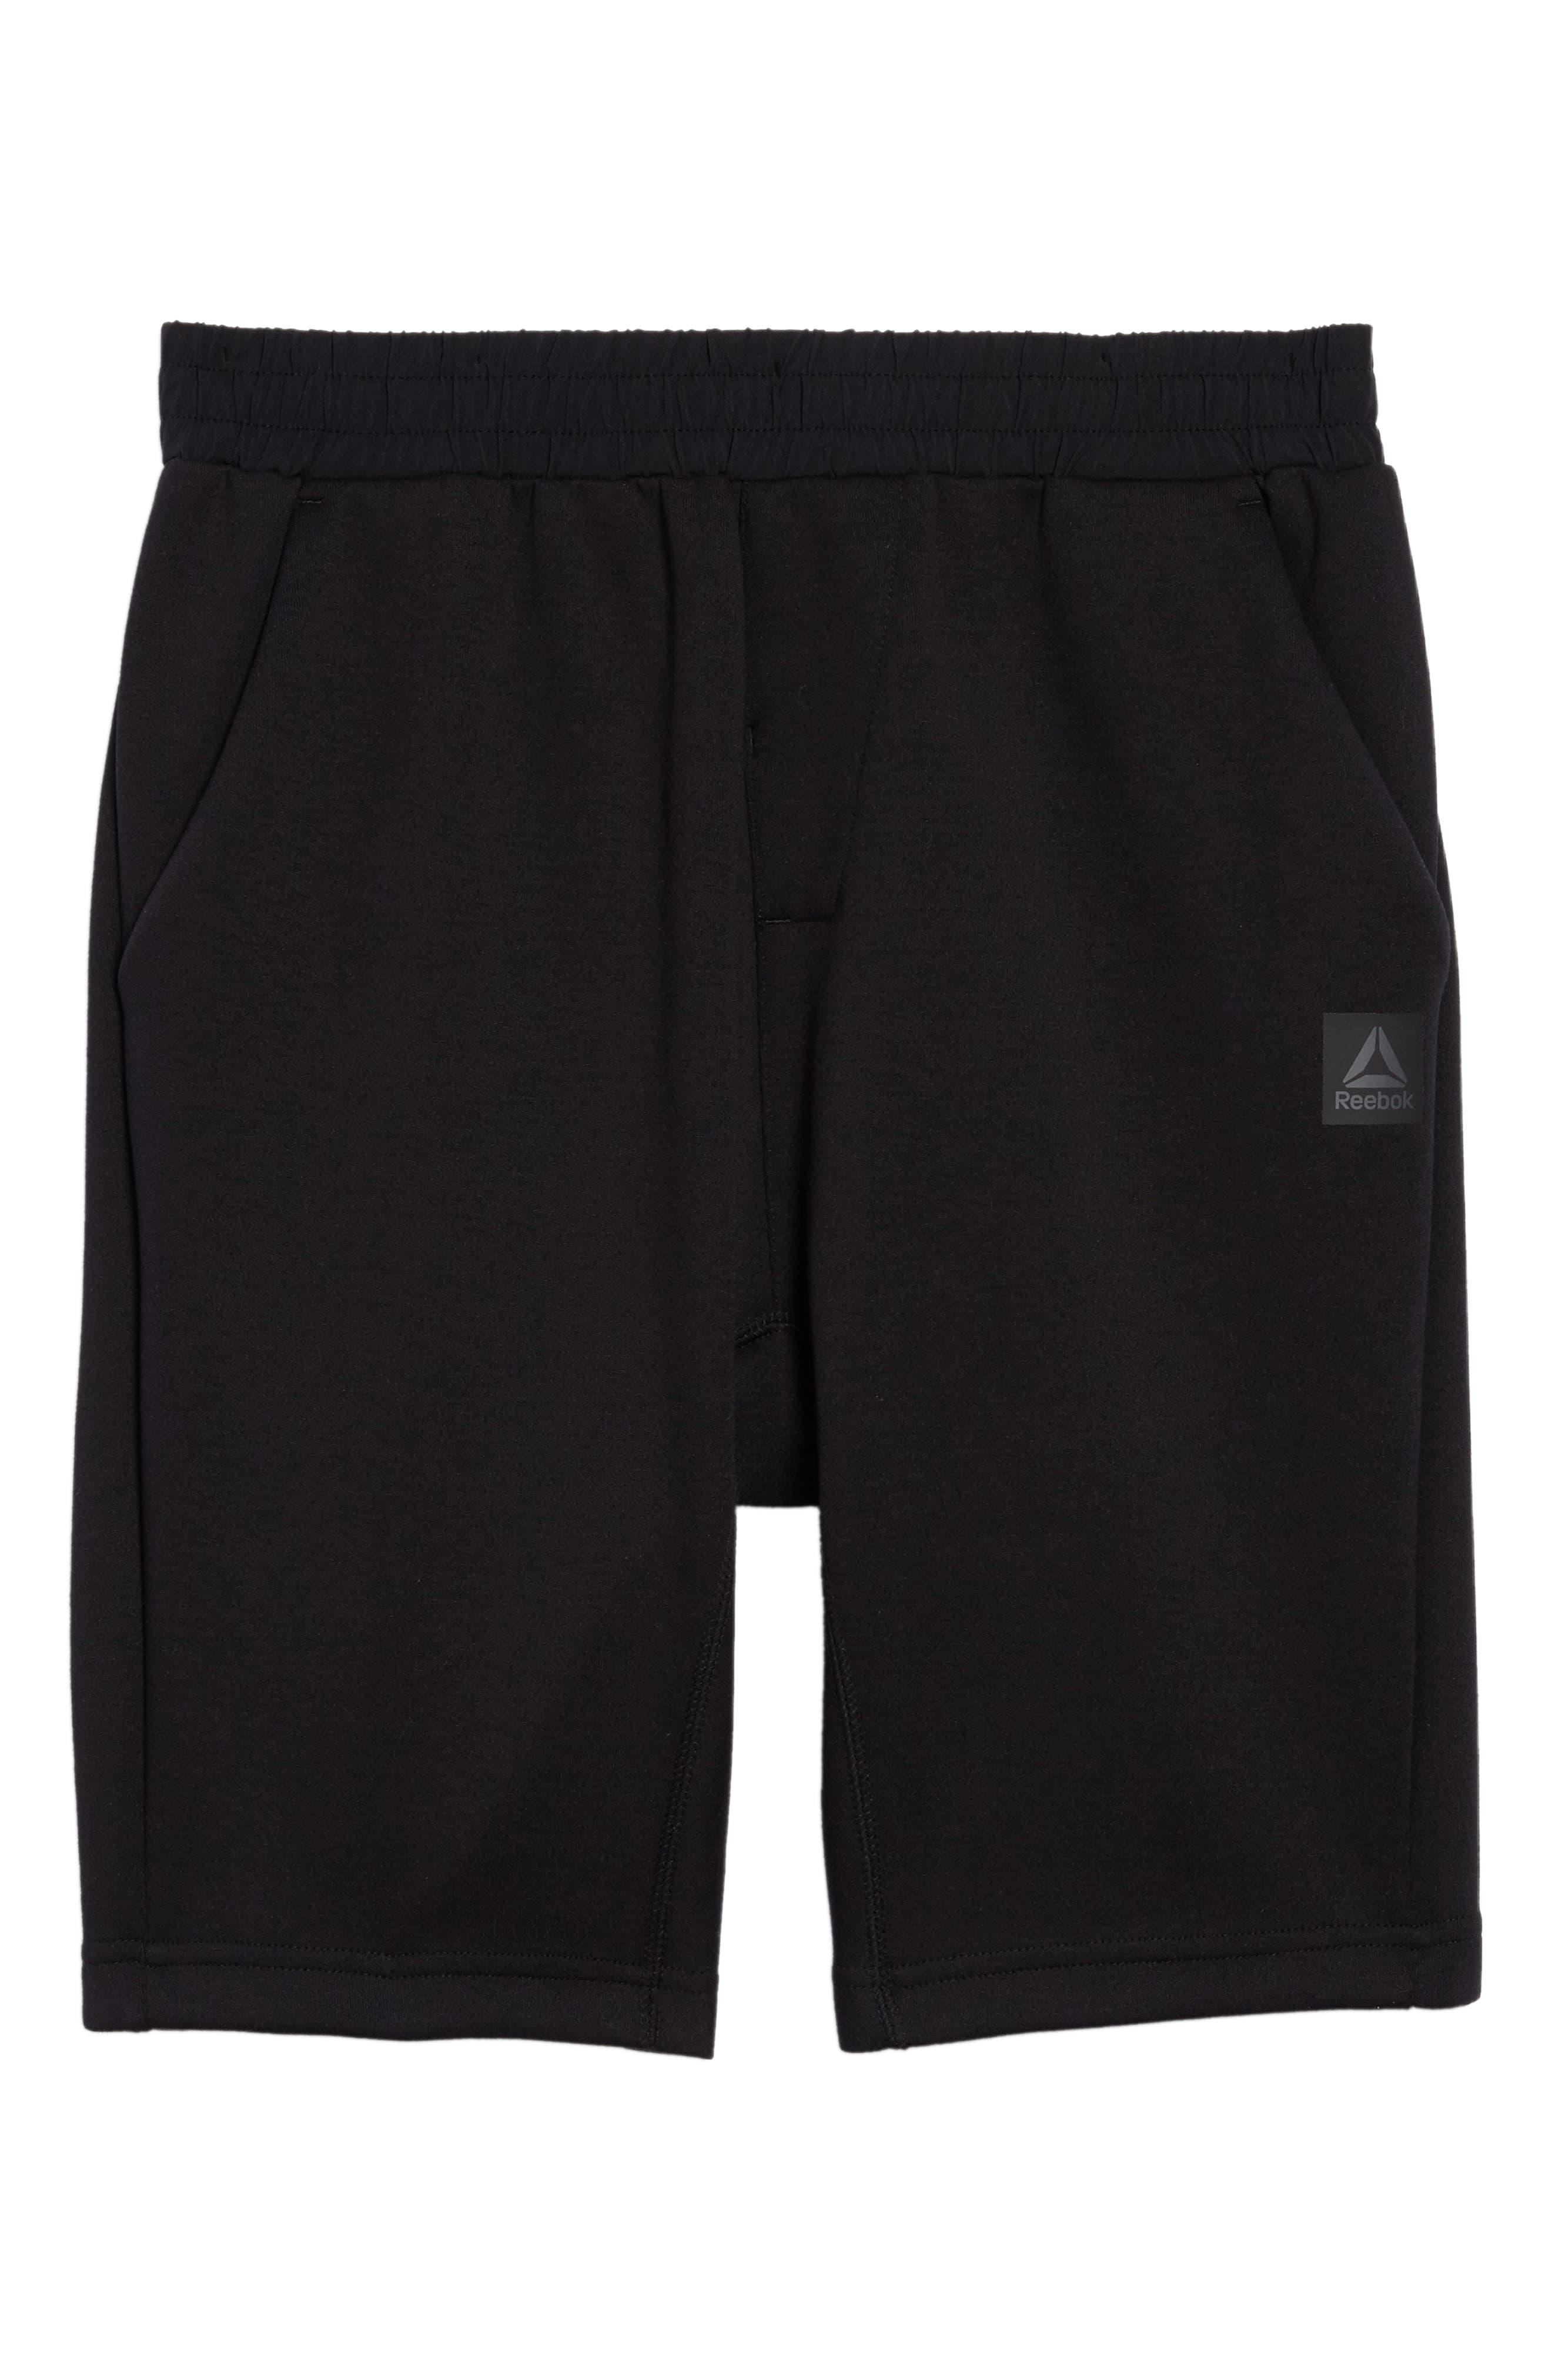 TS Knit Shorts,                             Alternate thumbnail 6, color,                             Black